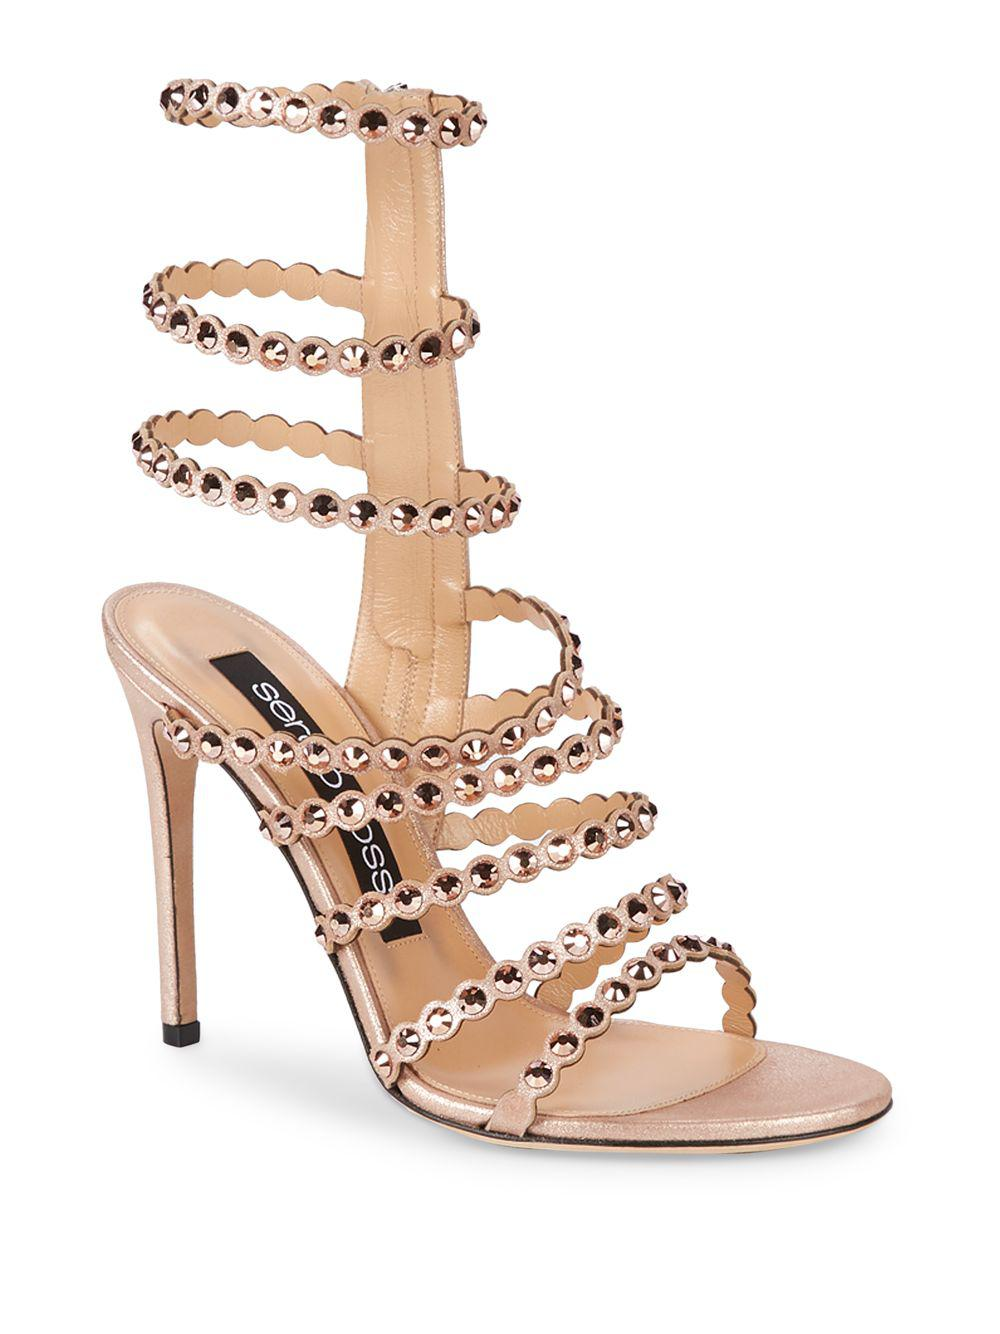 8224a3fb9706 Sergio Rossi. Women s Kimberly Crystal Gladiator Sandals